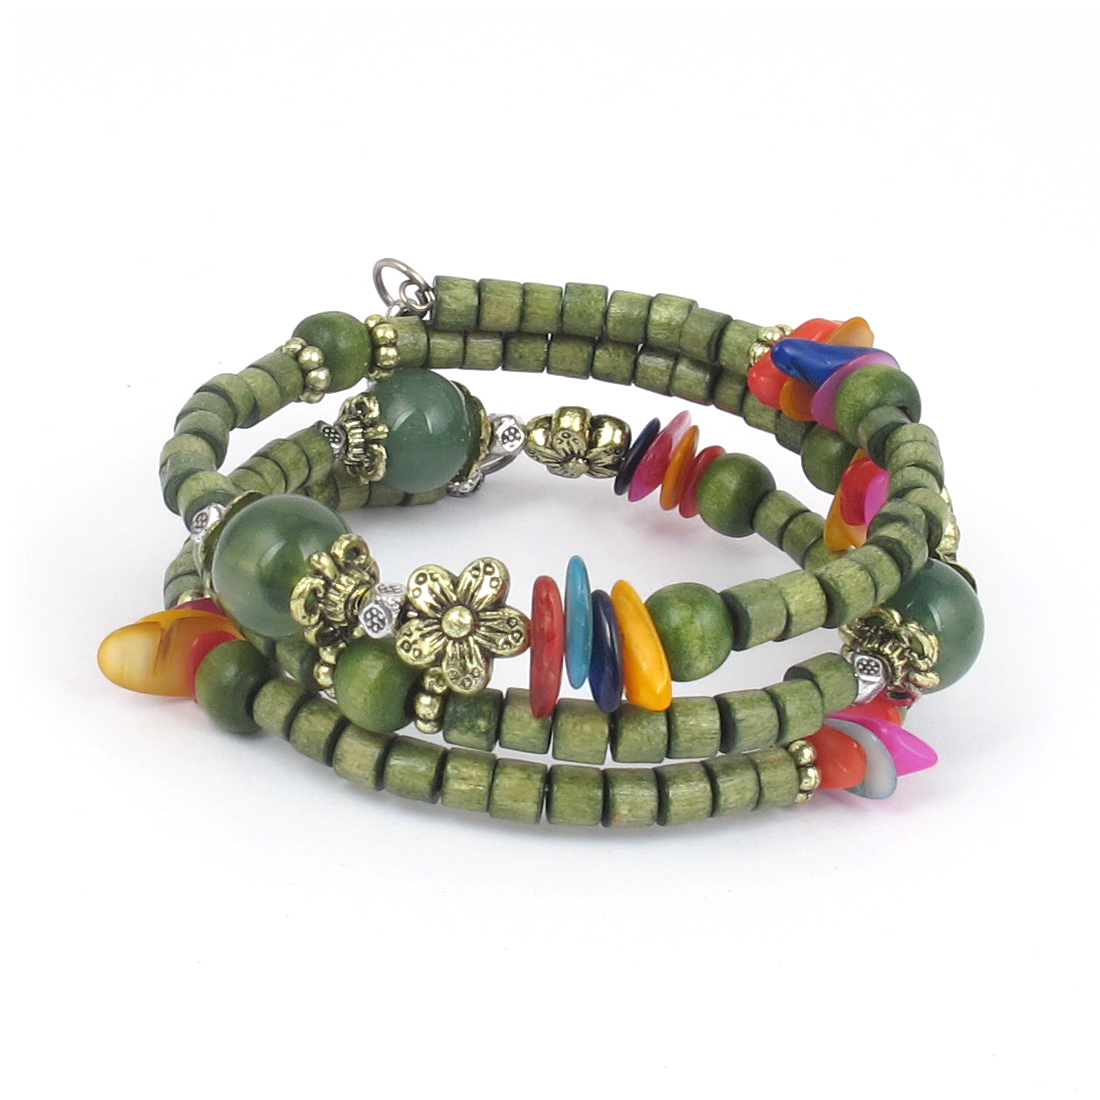 Women Handmade National Style Wooden Cylinder Beads Flower Decor 3-layer Bangle Bracelet Green